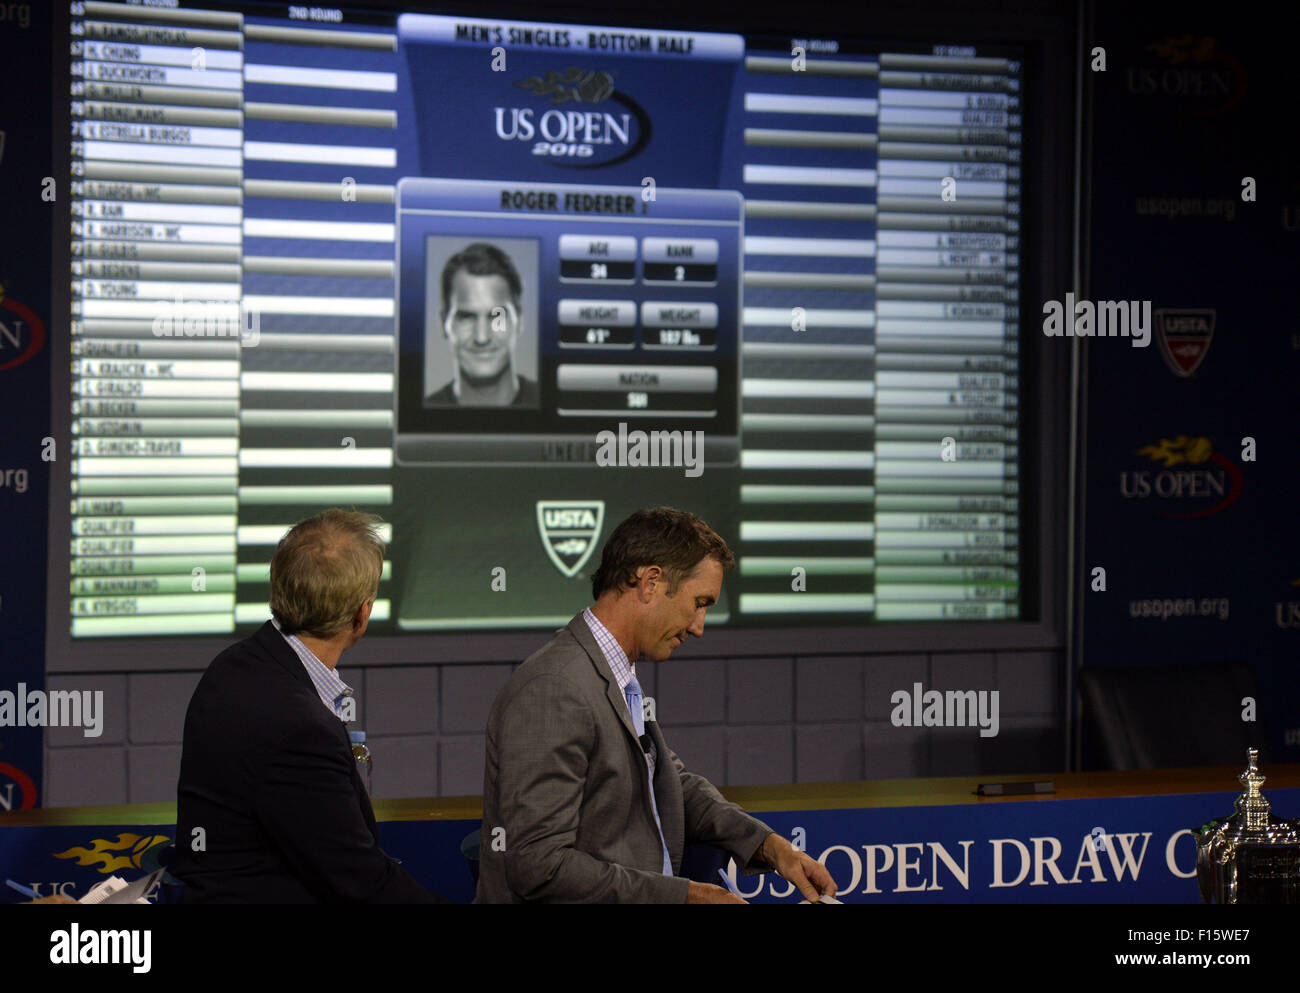 New York, USA. 27th Aug, 2015. The U.S. Open draw list is seen during the U.S. Open Tennis draw ceremony in New - Stock Image